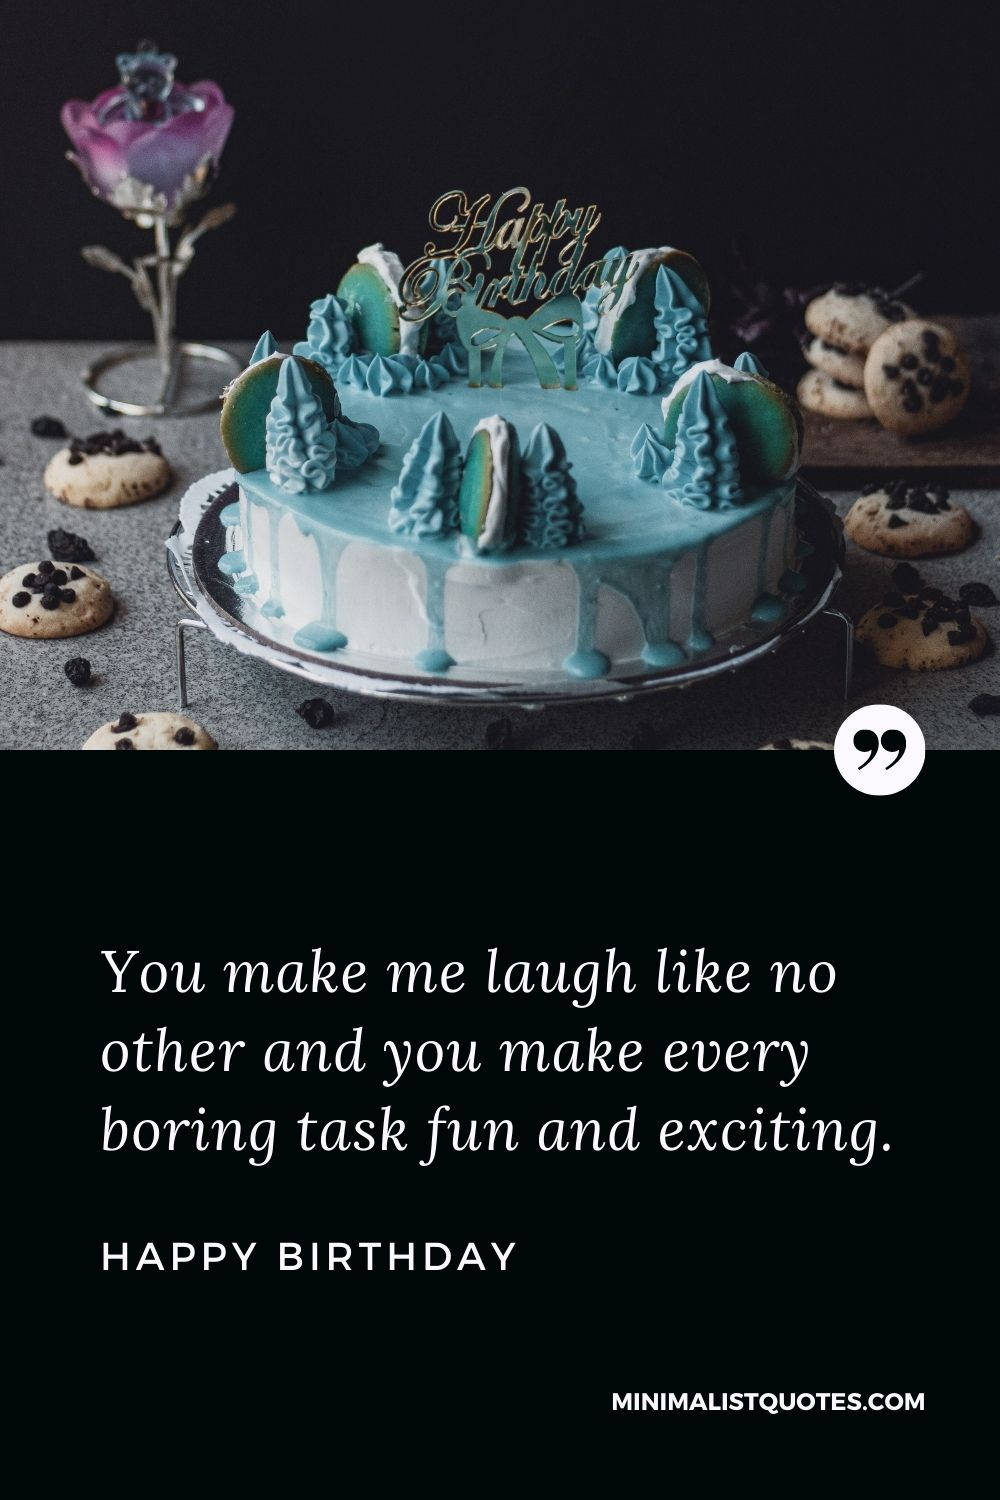 Birthday wish, quote & message with image: You make me laugh like no other and you make every boring task fun and exciting. Happy Birthday!